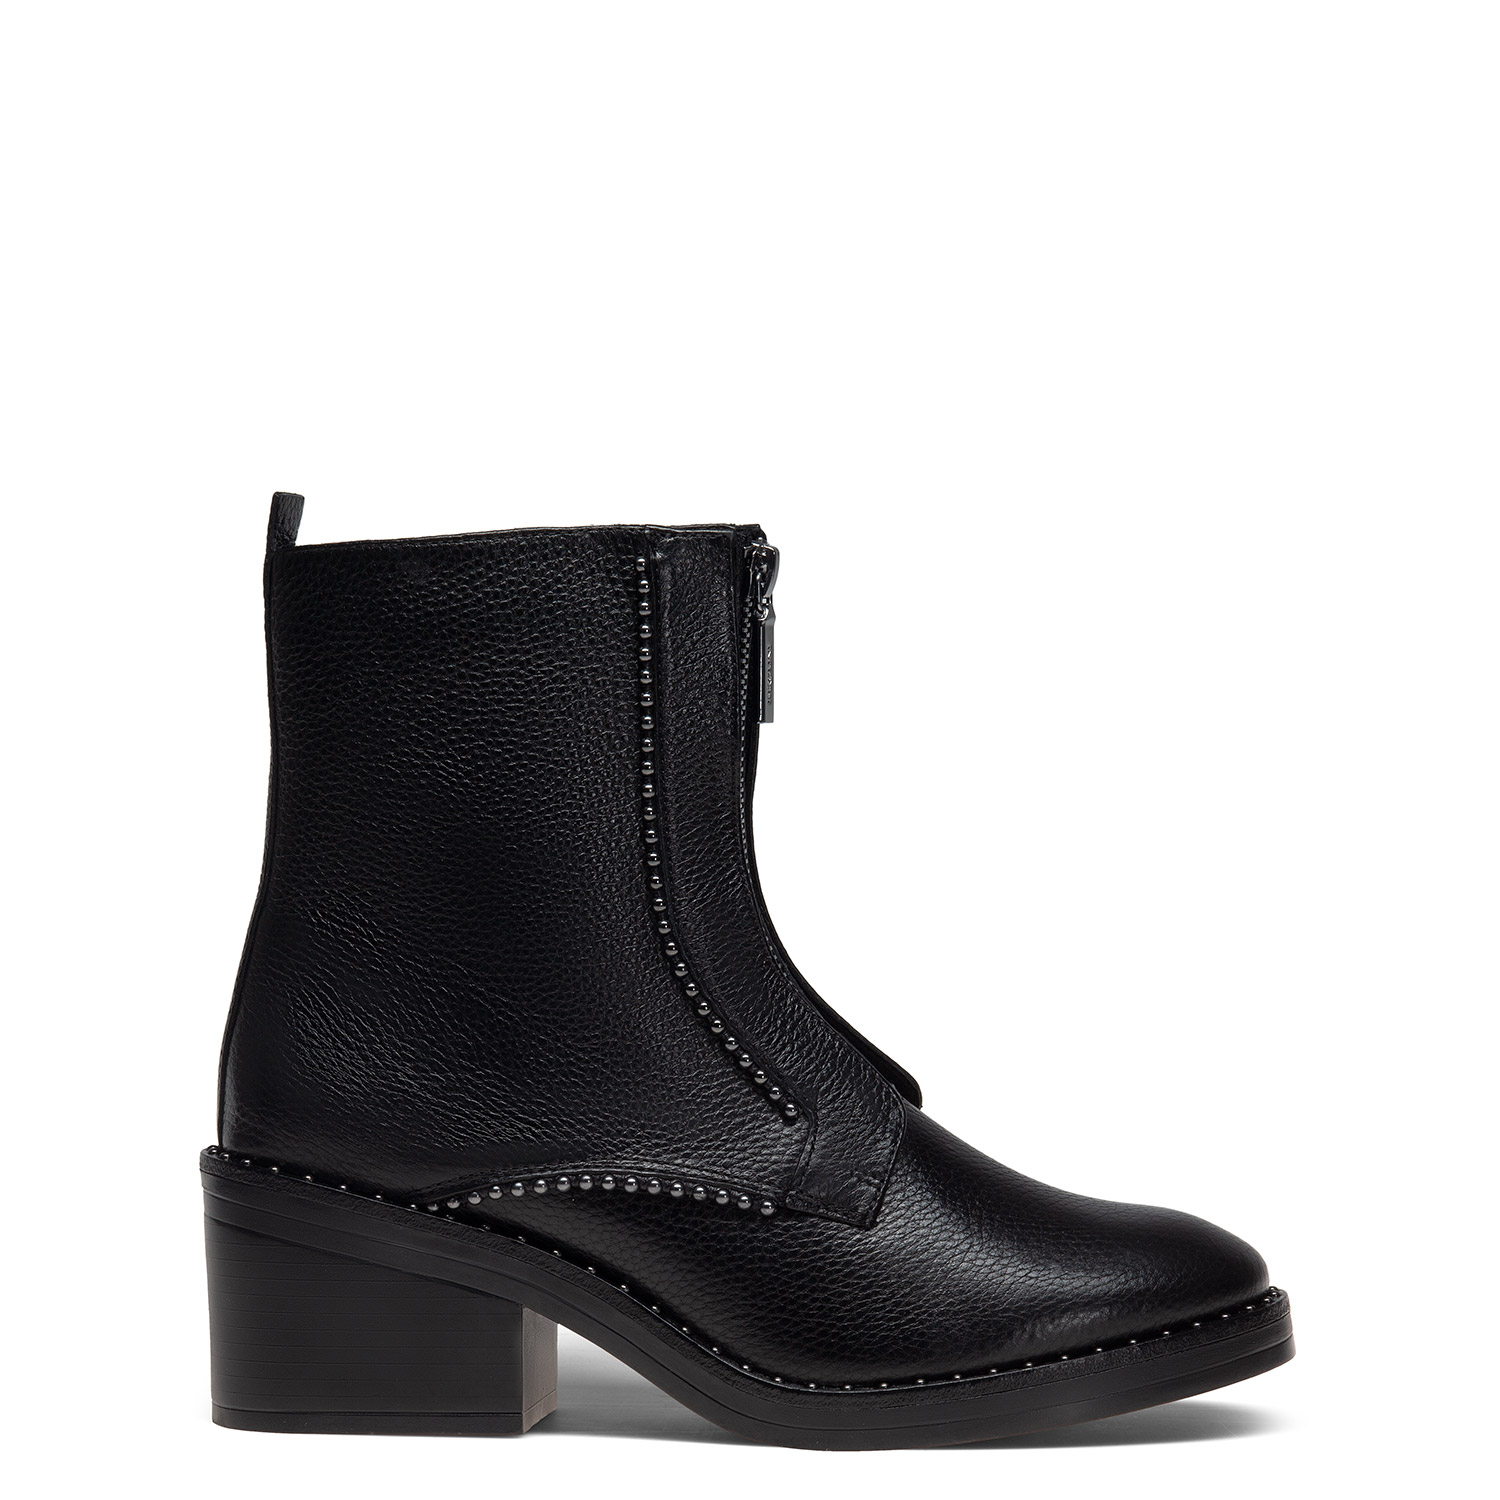 Women's ankle boots PAZOLINI FG-ABL9-1